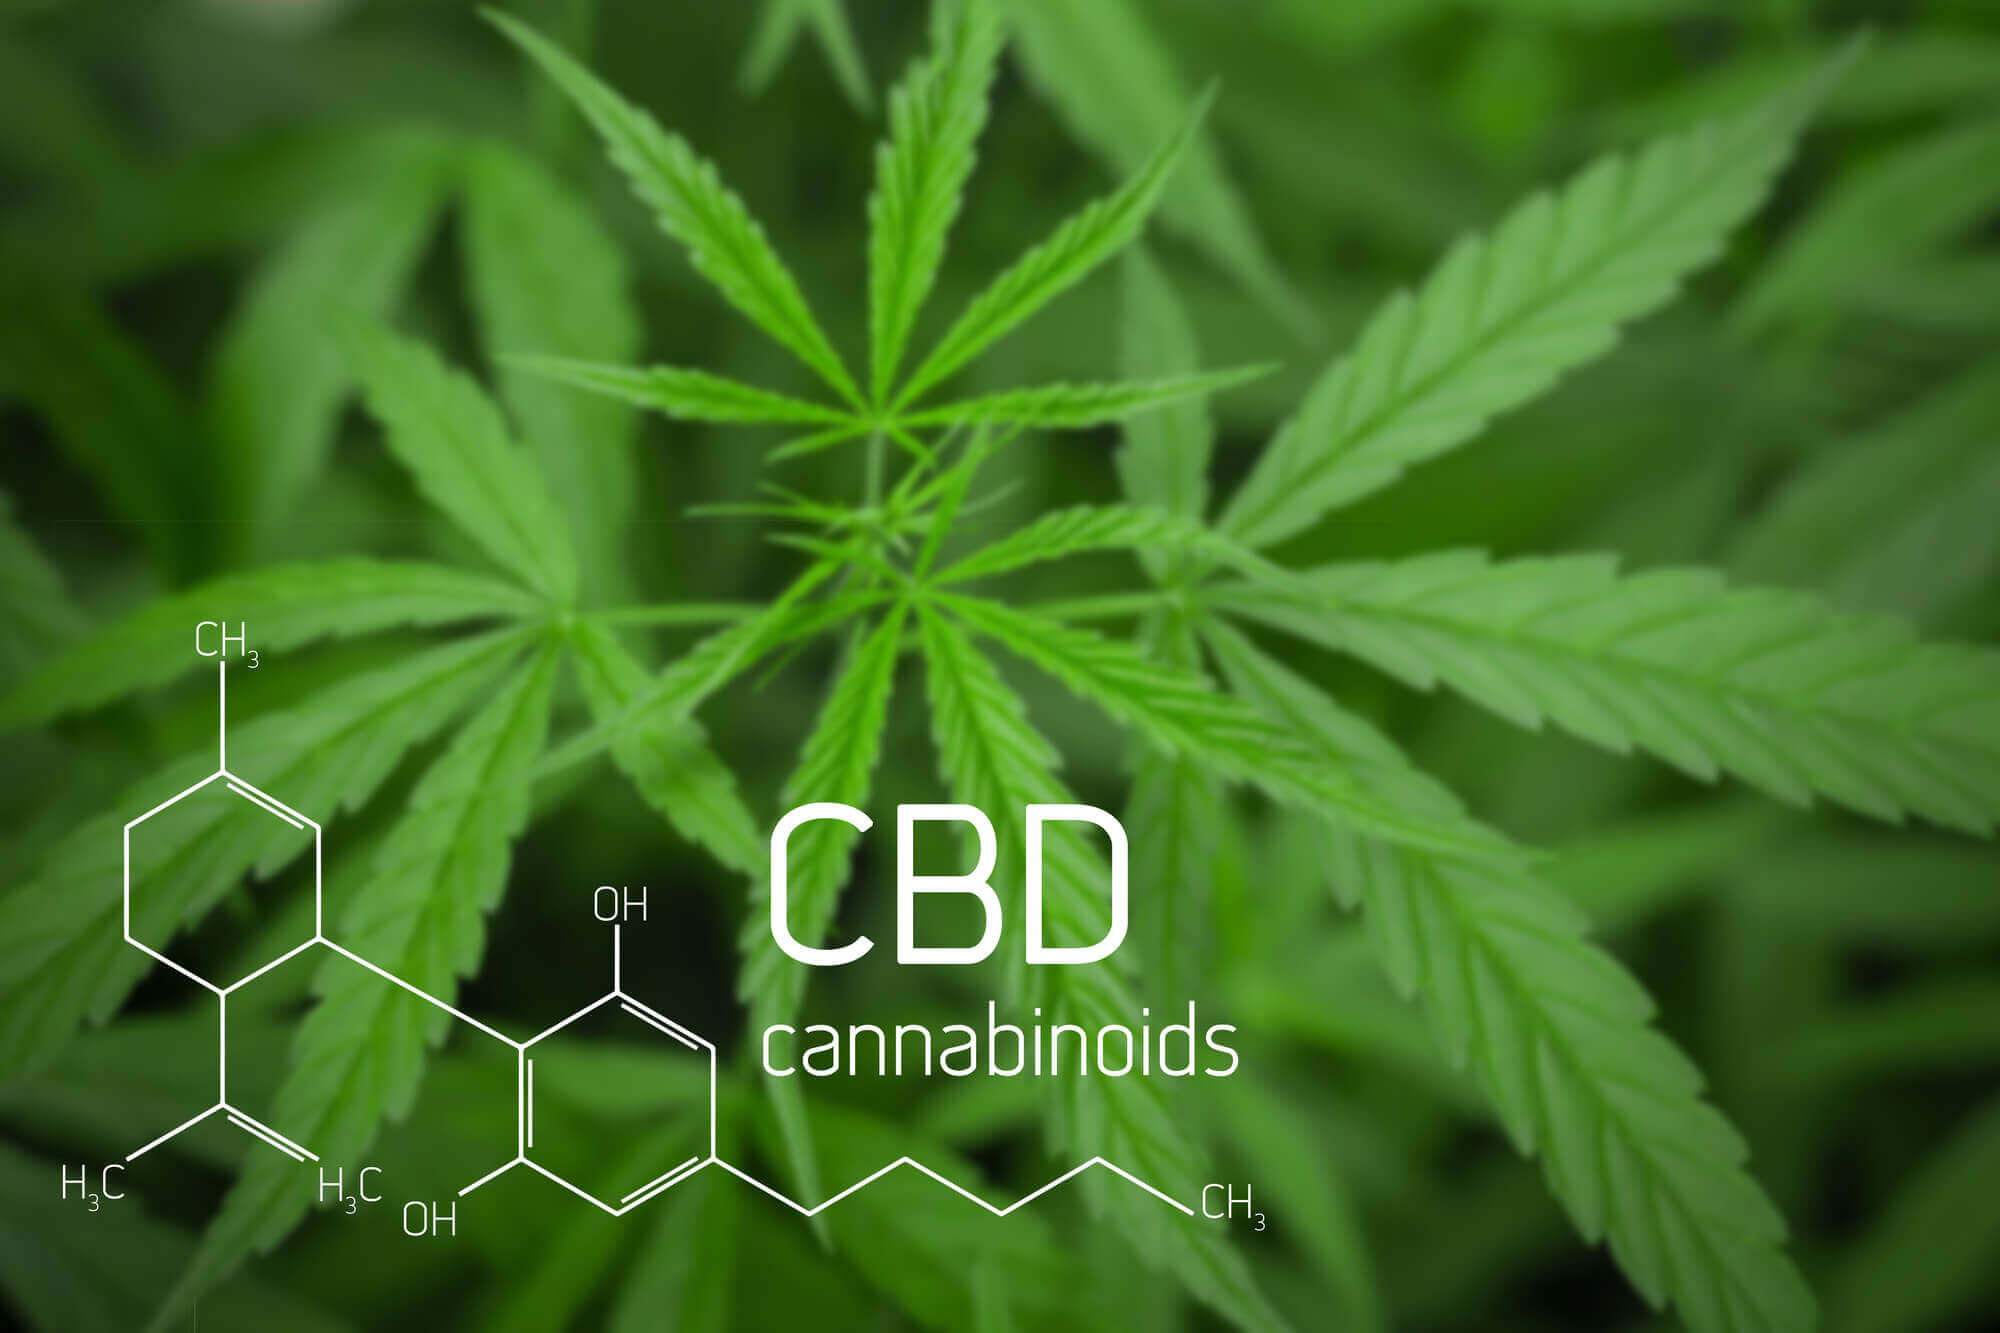 Cannabidiol (CBD) Market to Register a CAGR of 33.5% by 2025, Predicts QY Research